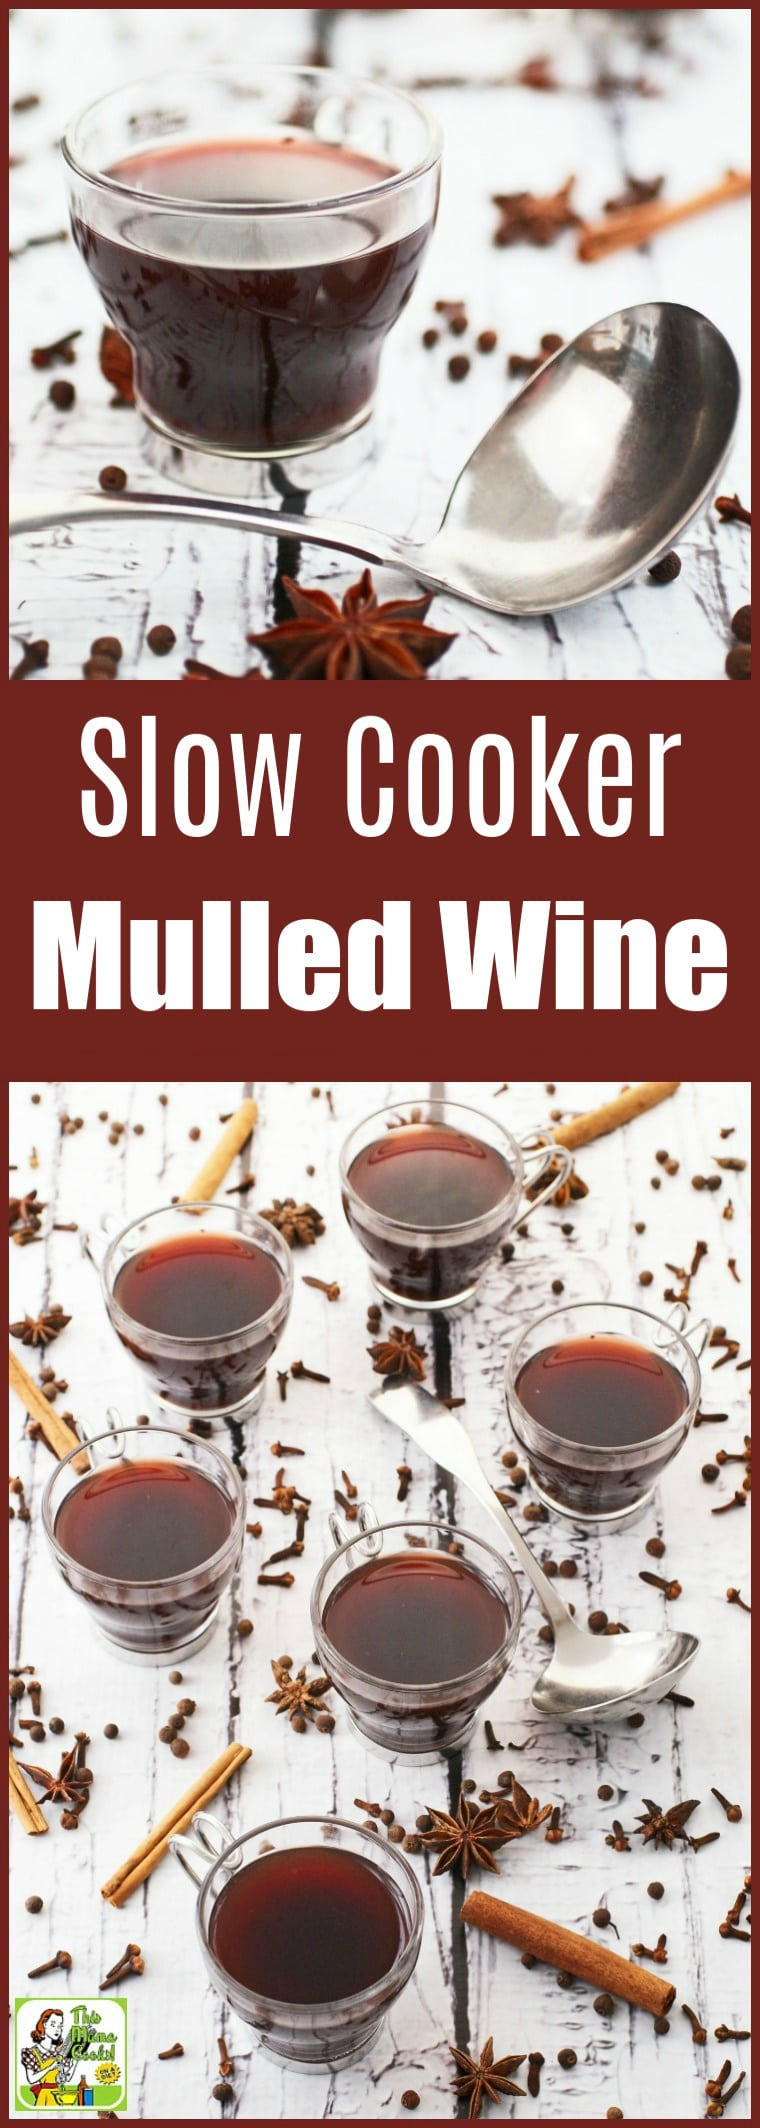 Make Slow Cooker Mulled Wine for your holiday parties. This easy to make holiday party cocktail can be made and served in your Crock-Pot. Your guests will love warming up with this delicious spiced wine holiday drink recipe. #slowcooker #crockpot #wine #cocktails #cocktailrecipes #drinks #drinking